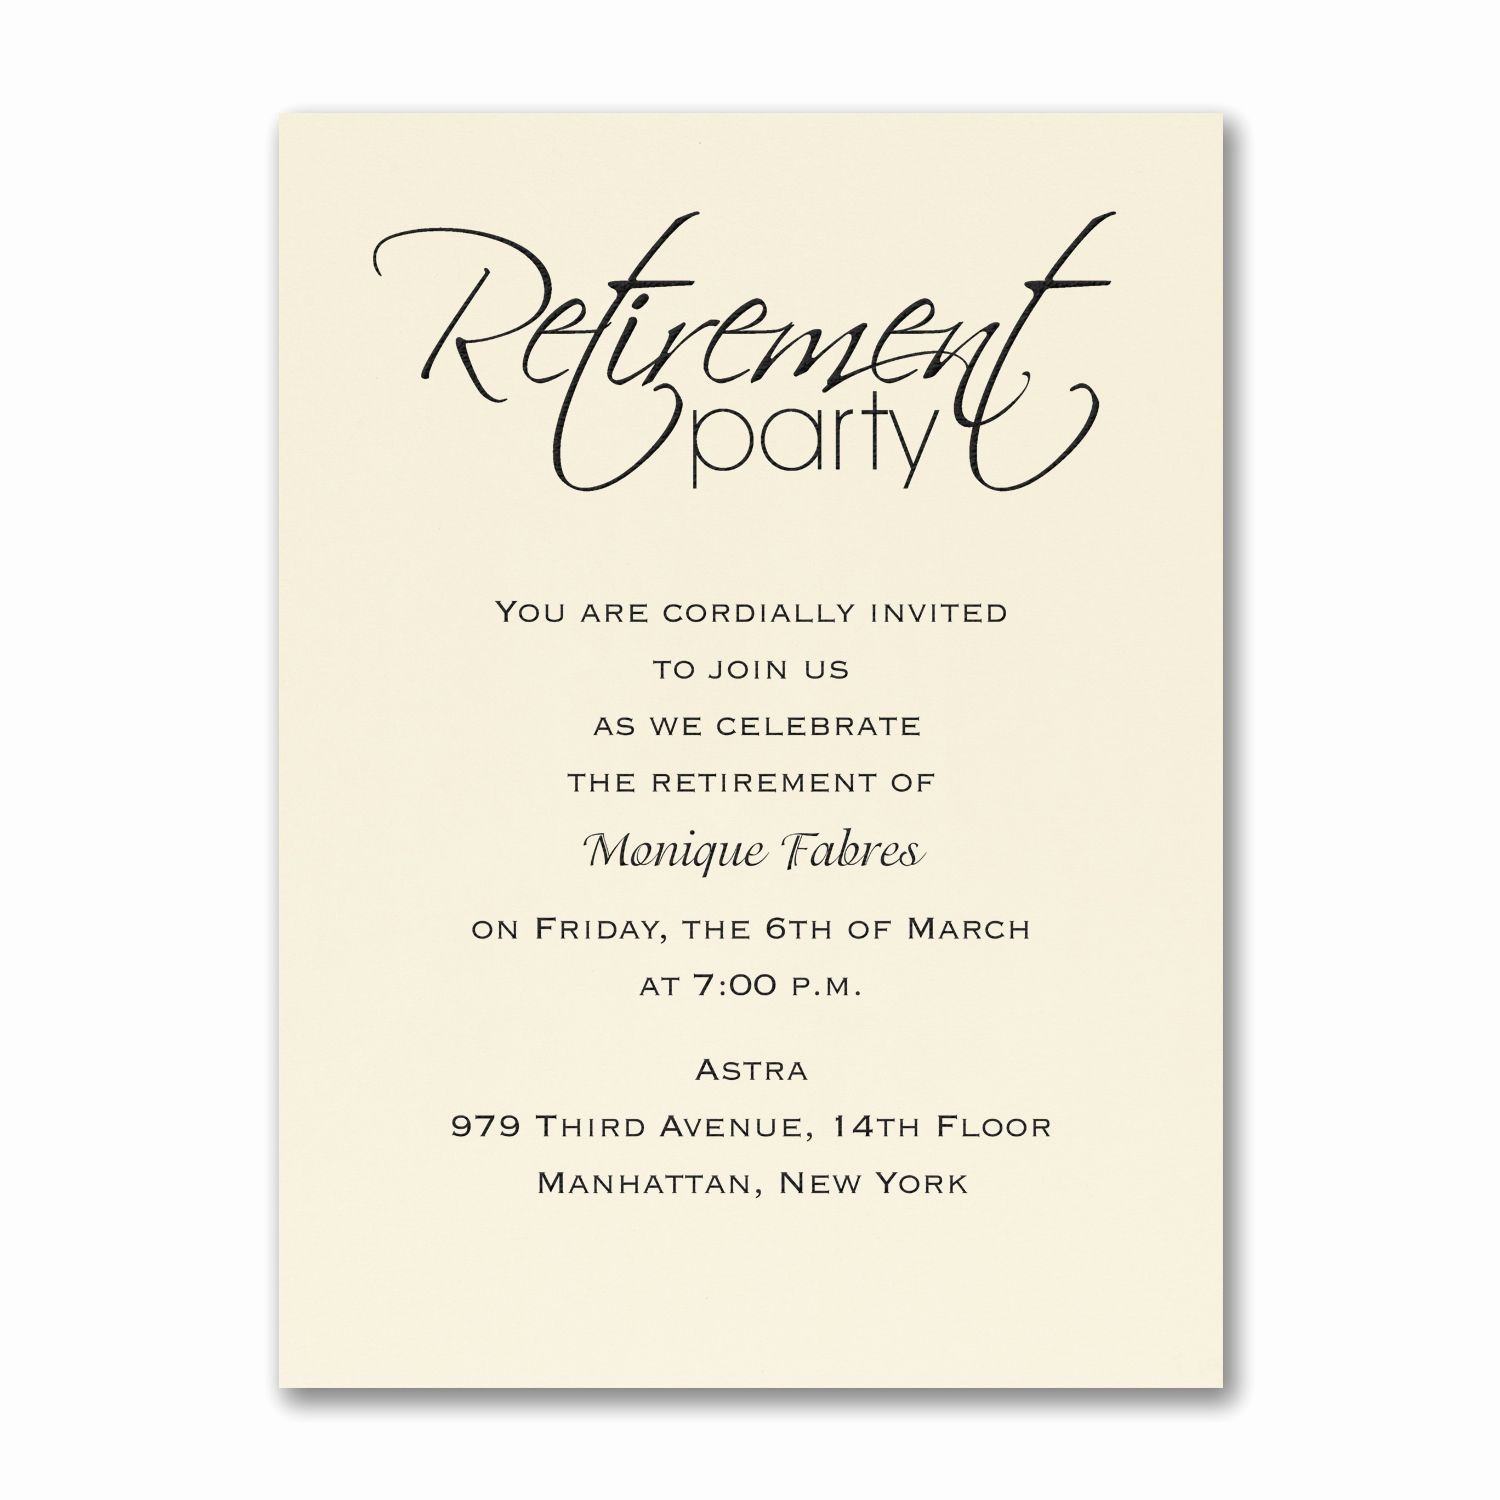 Invitation for Retirement Party Awesome Retirement Celebration Party Invitation Ecru